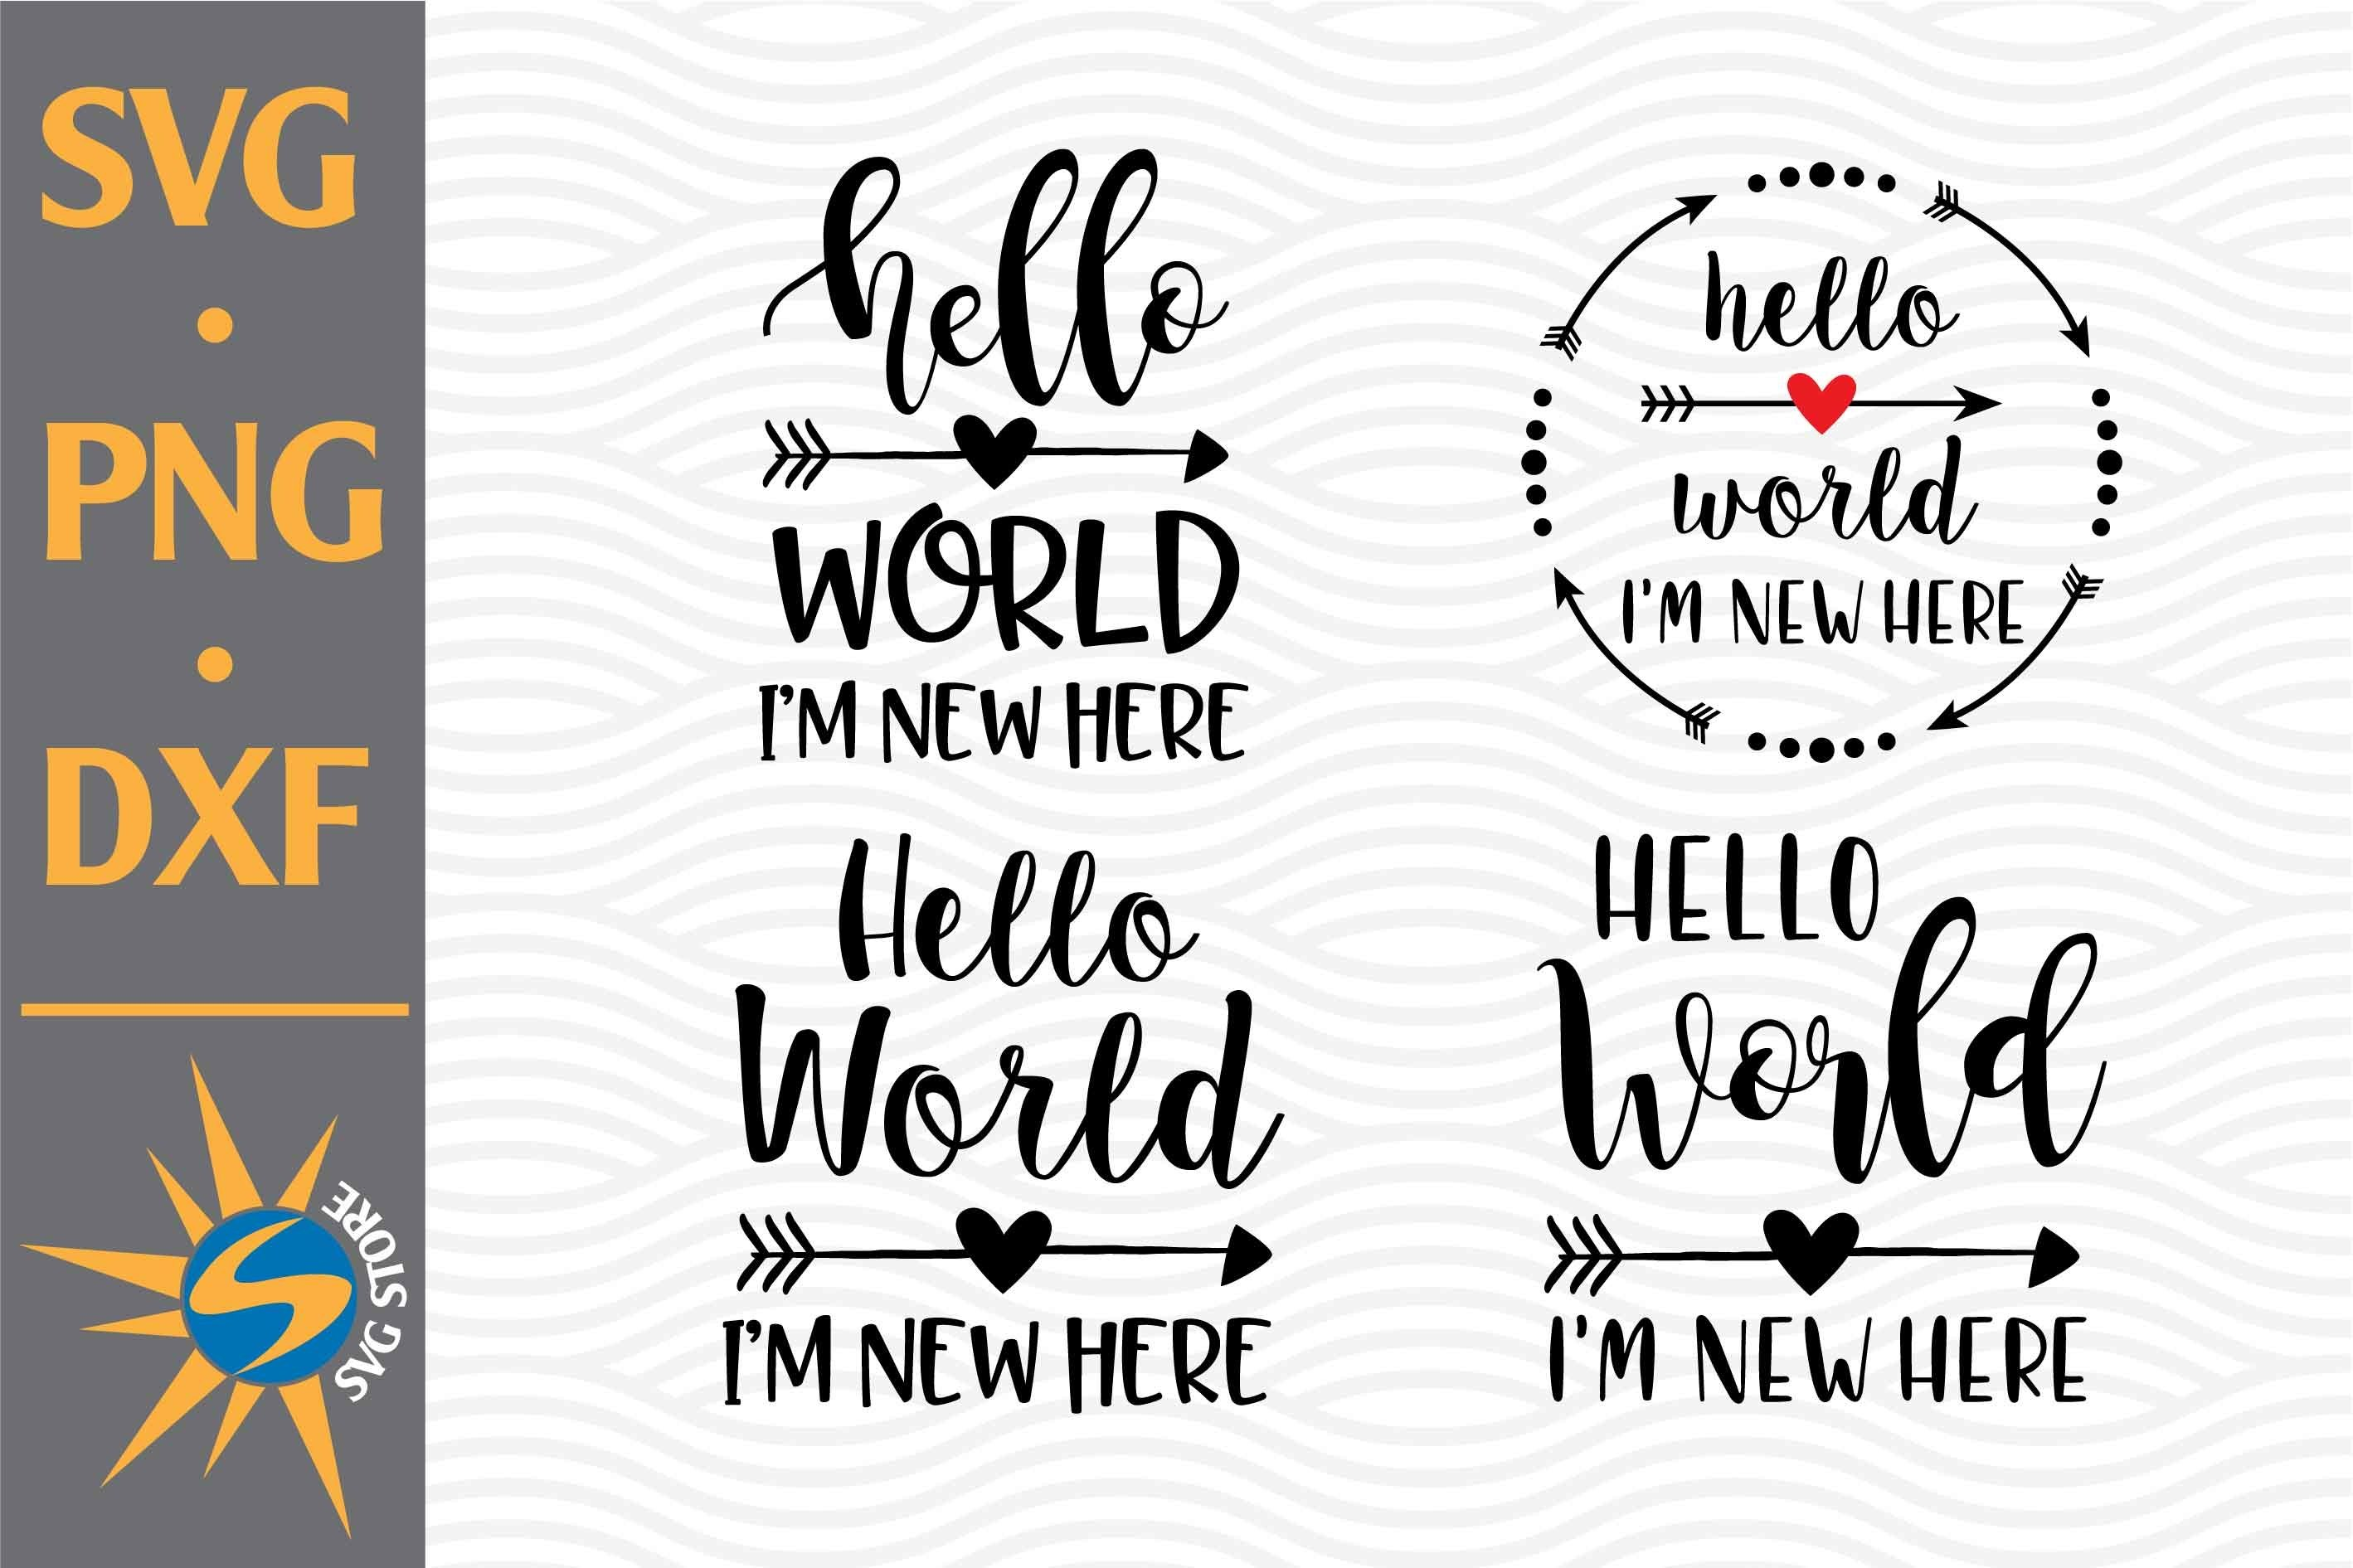 Cutting Machine Files Simply One derful Word Birthday Design Dxf Formats INSTANT DOWNLOAD Silhouette Cricut Eps Scan N Cut SVG